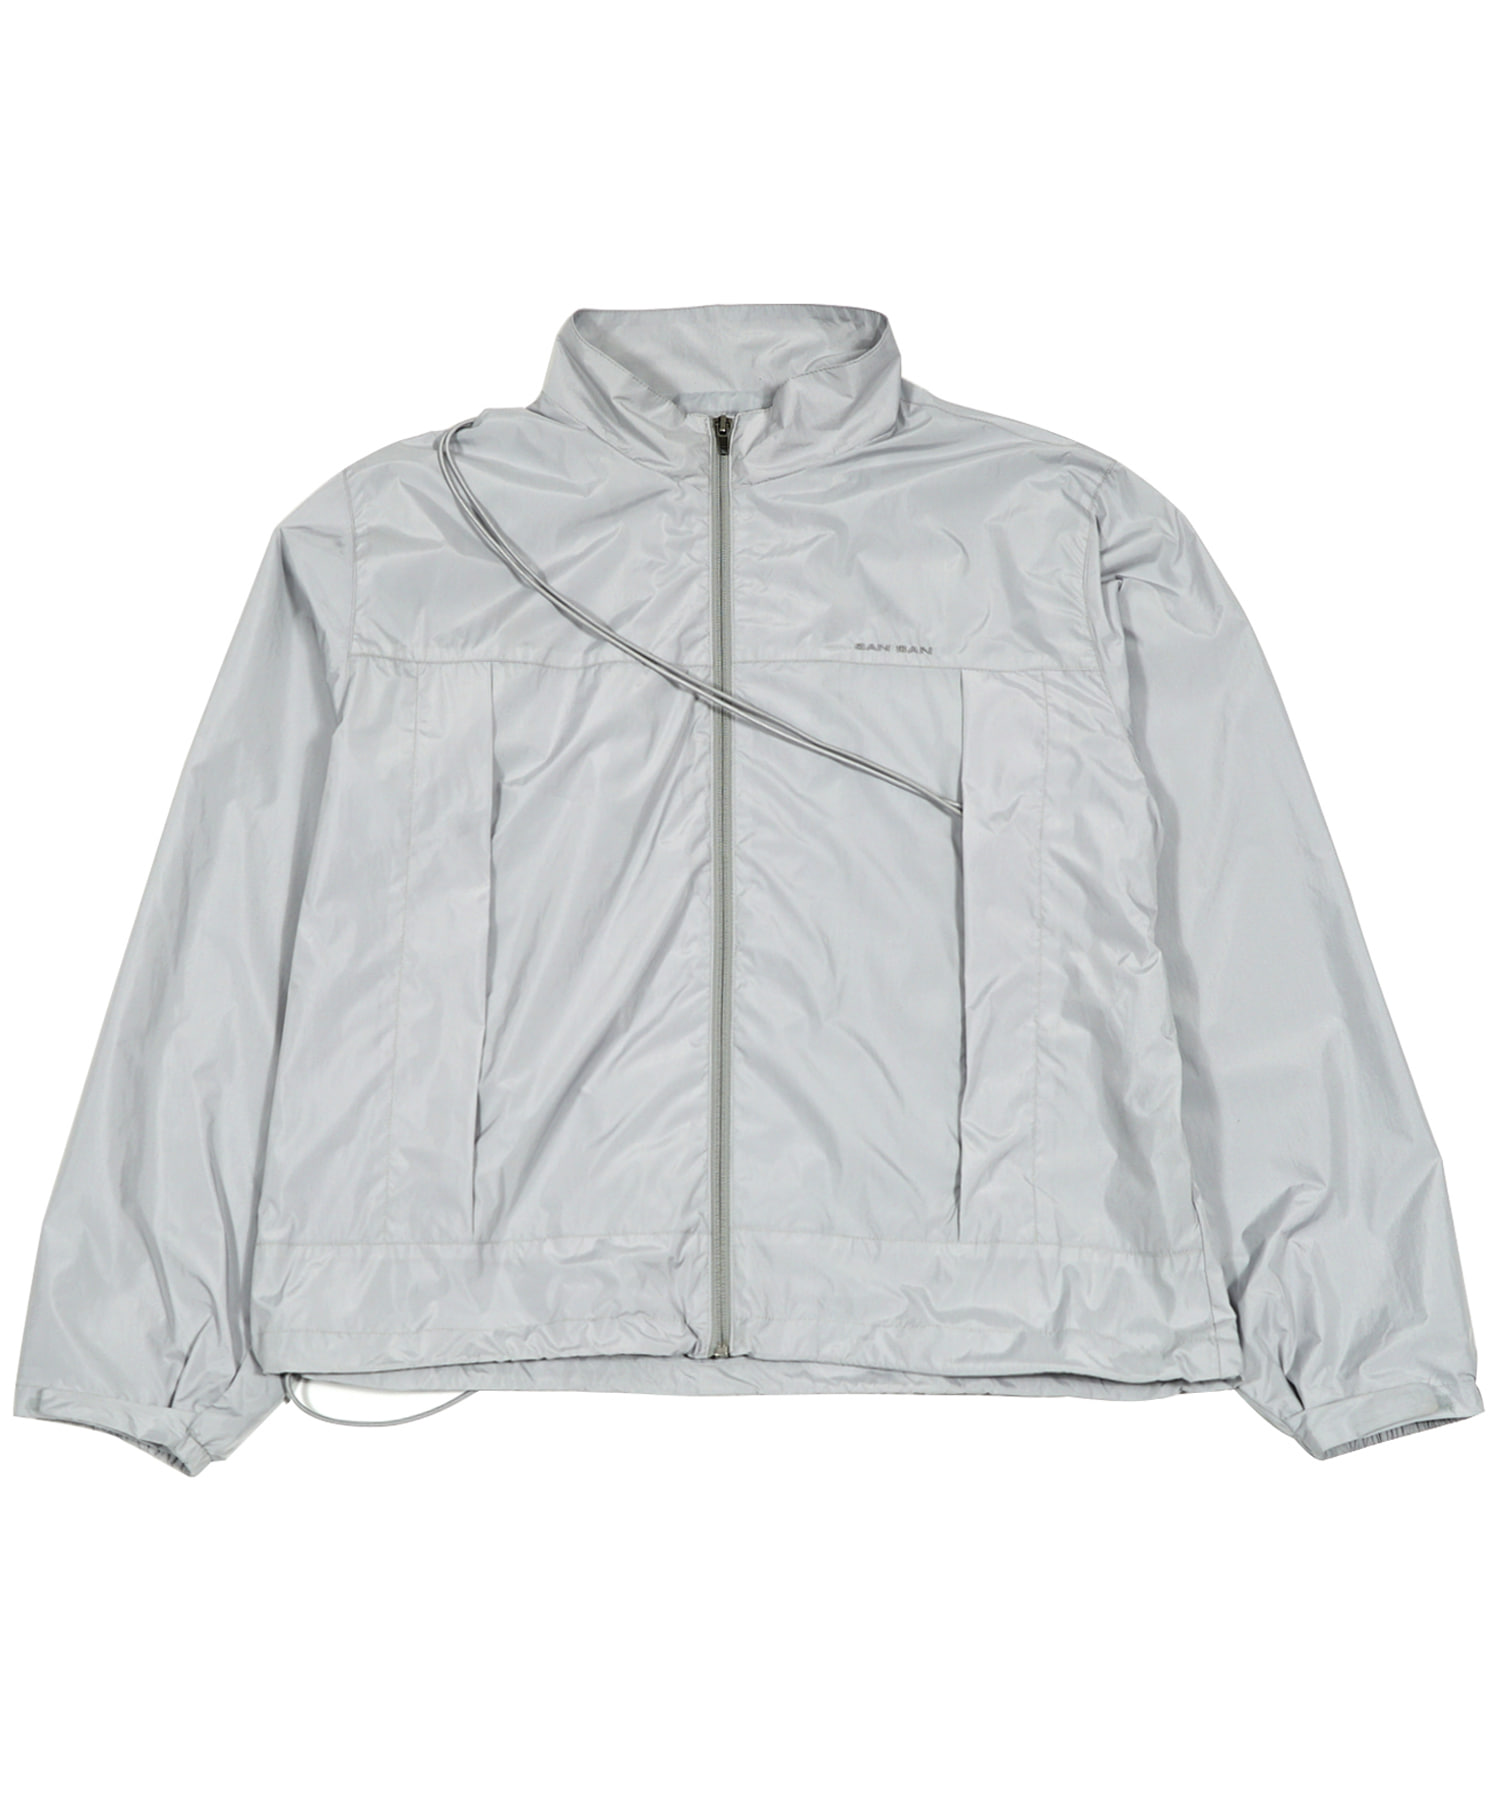 STRING JACKET GREY